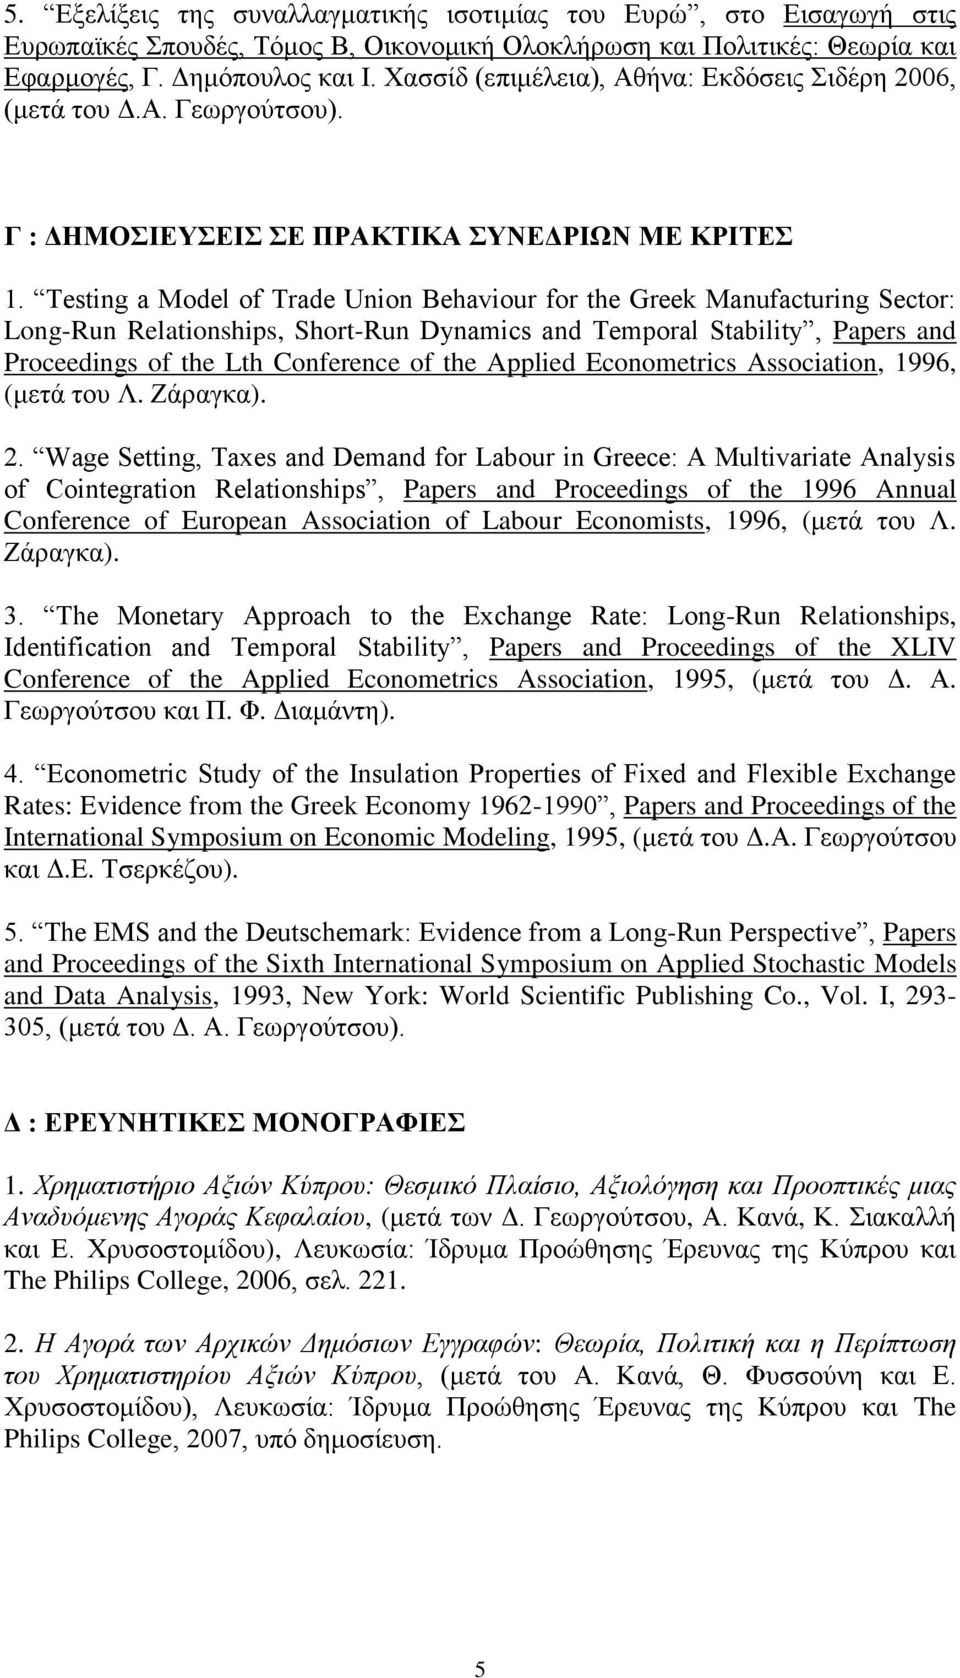 Testing a Model of Trade Union Behaviour for the Greek Manufacturing Sector: Long-Run Relationships, Short-Run Dynamics and Temporal Stability, Papers and Proceedings of the Lth Conference of the